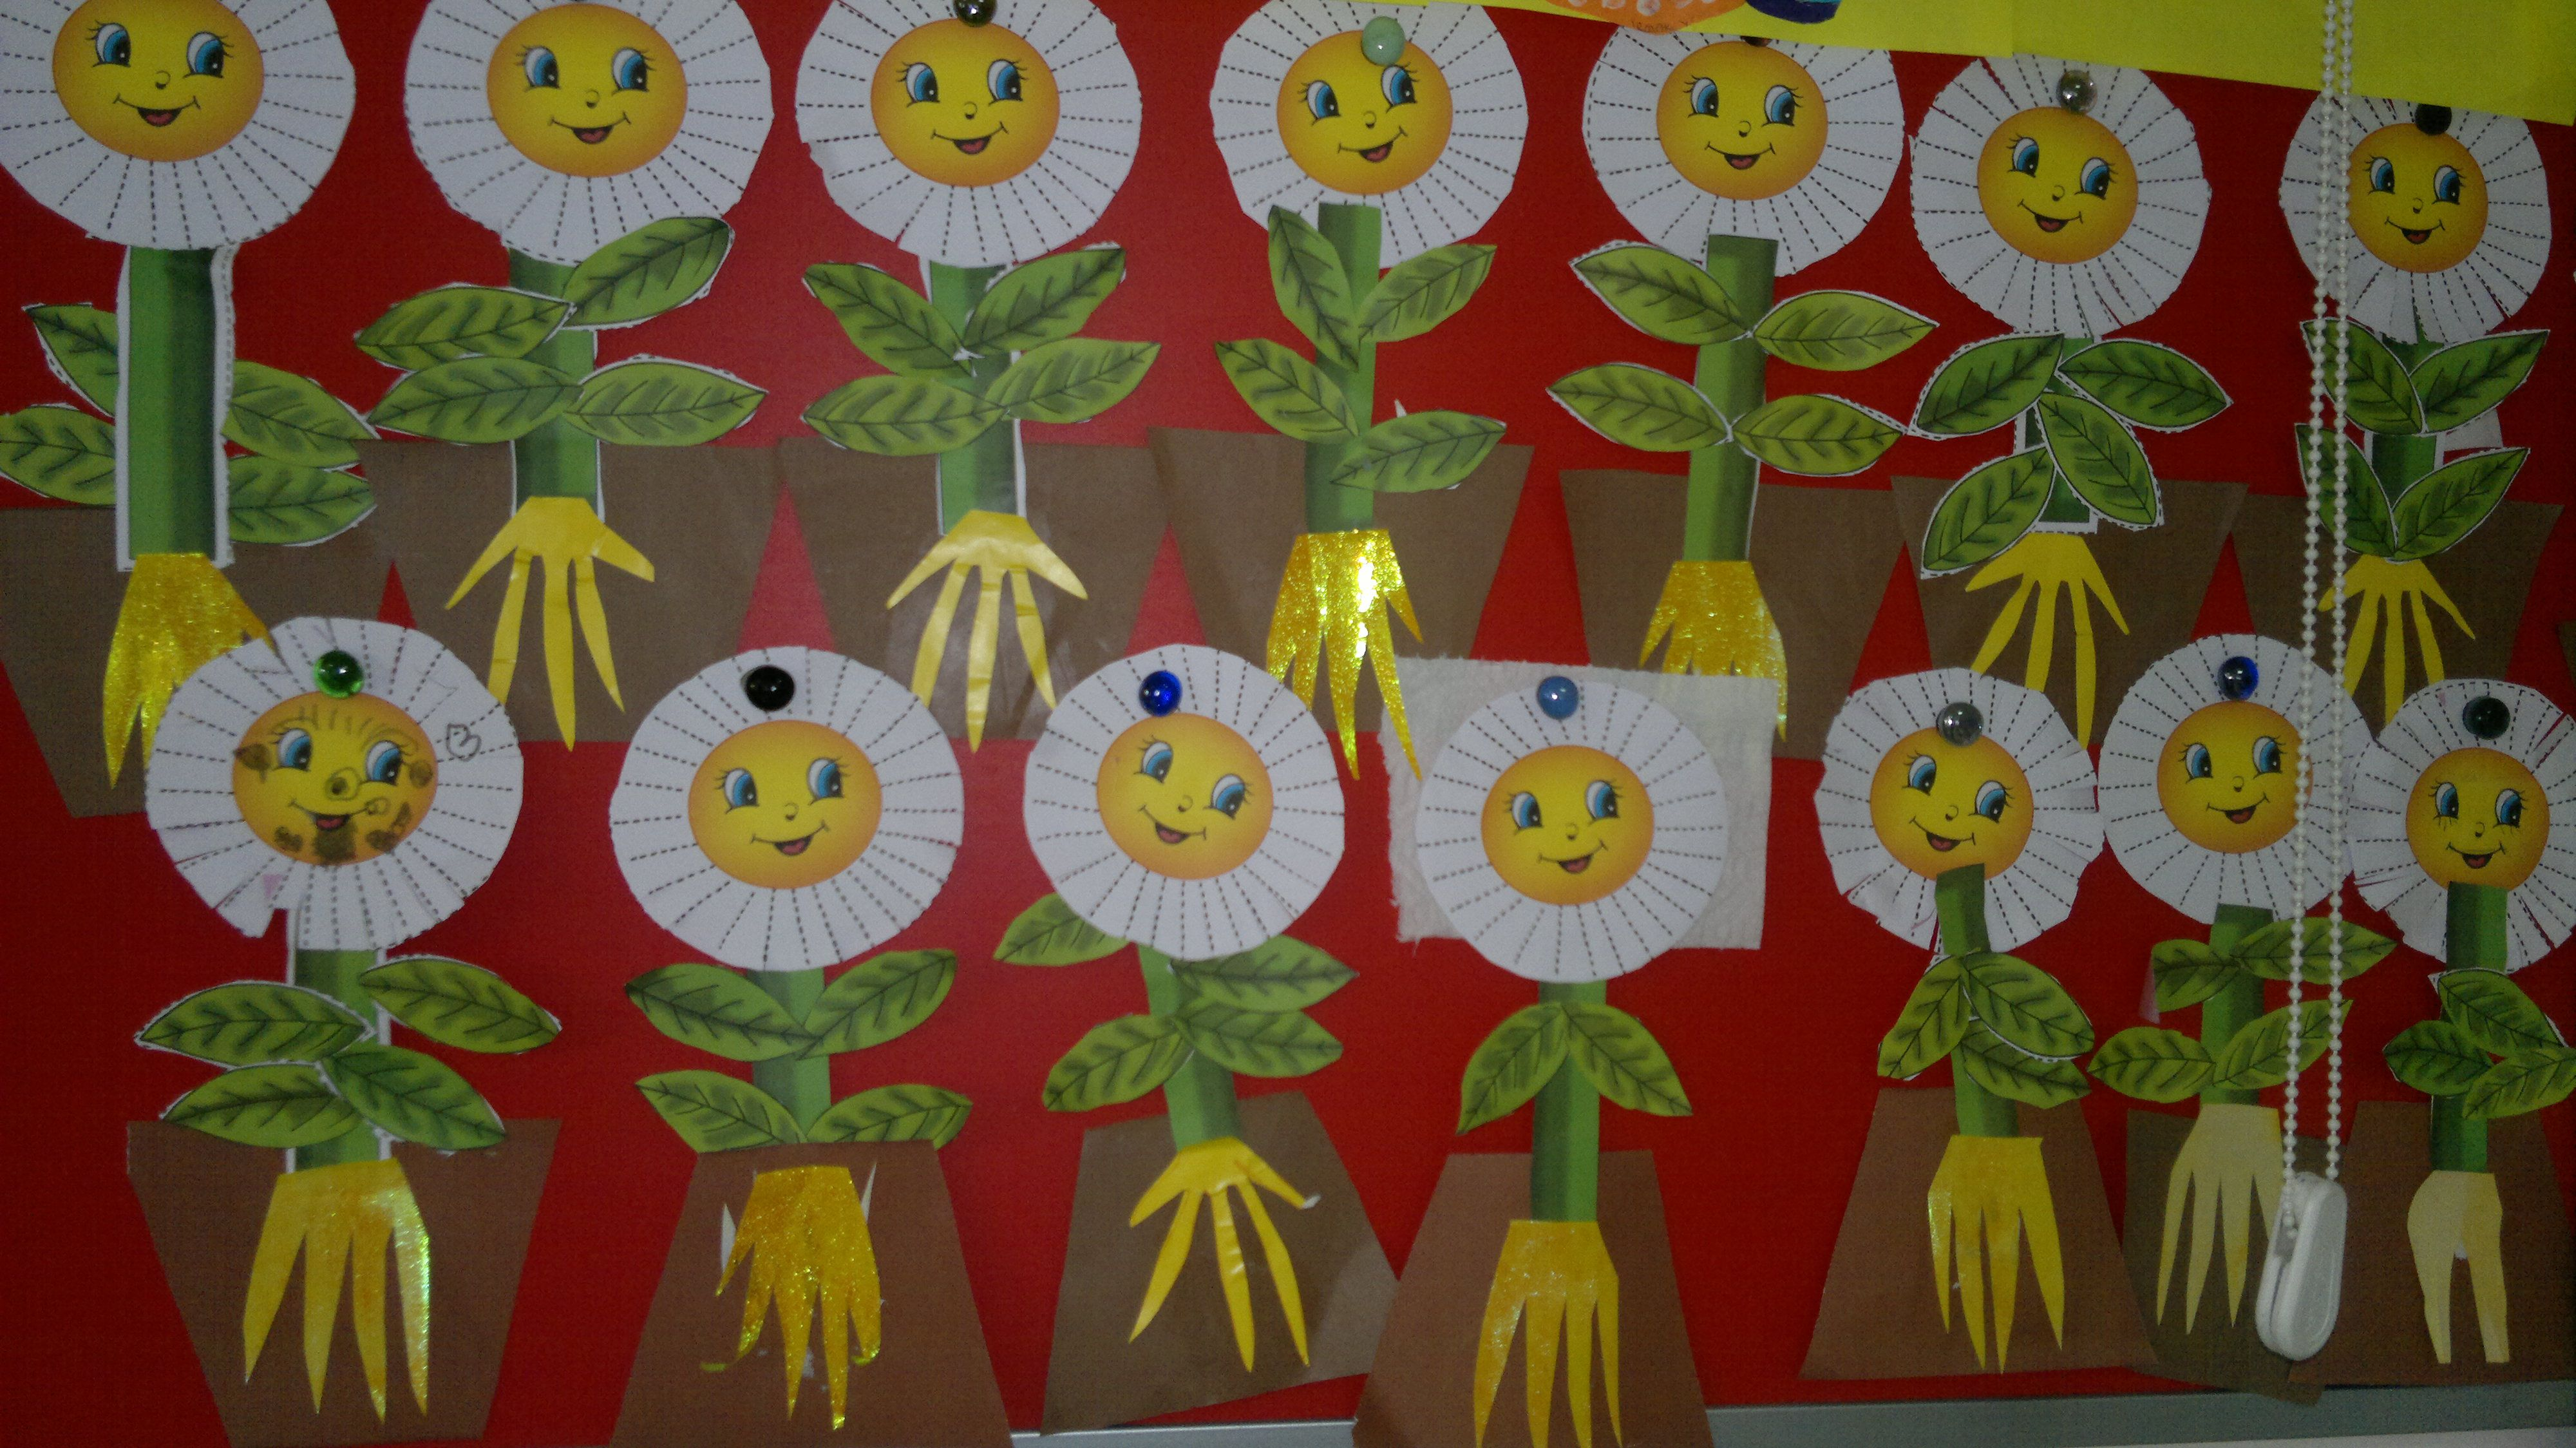 We Learned Plants Roots Stems Leaves Flowers